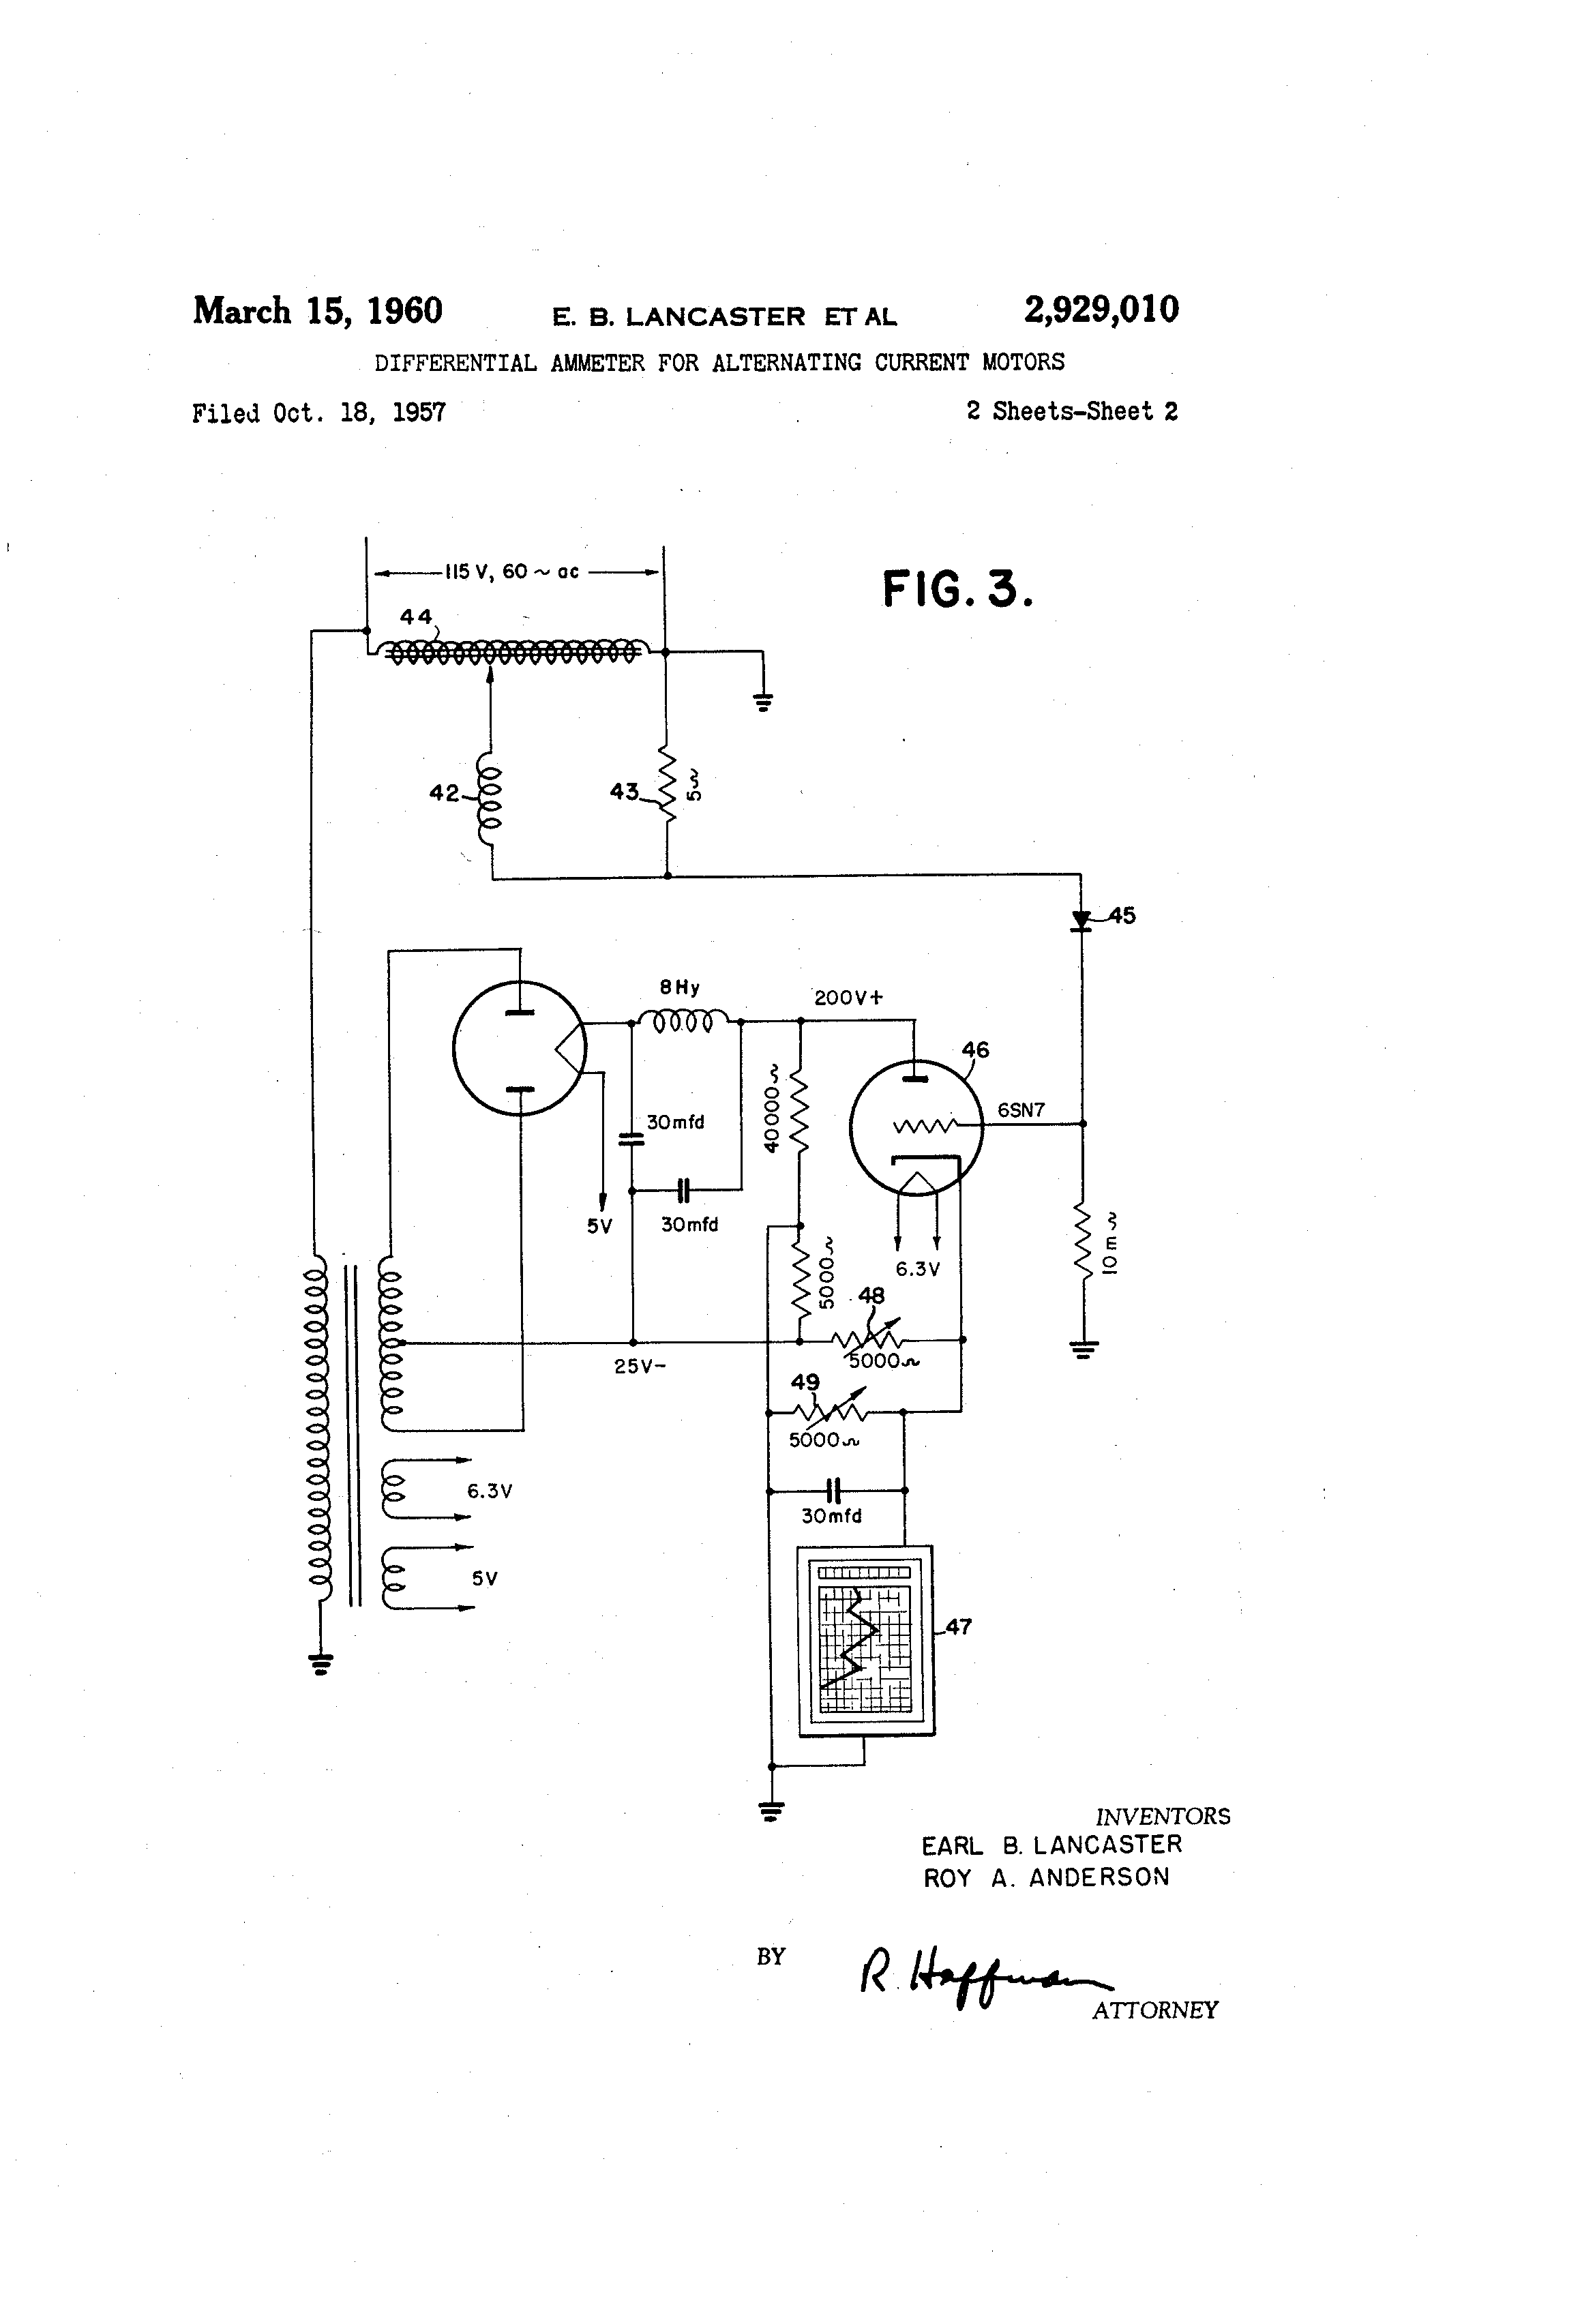 Patente Us2929010 Differential Ammeter For Alternating Current Diagram Patent Drawing